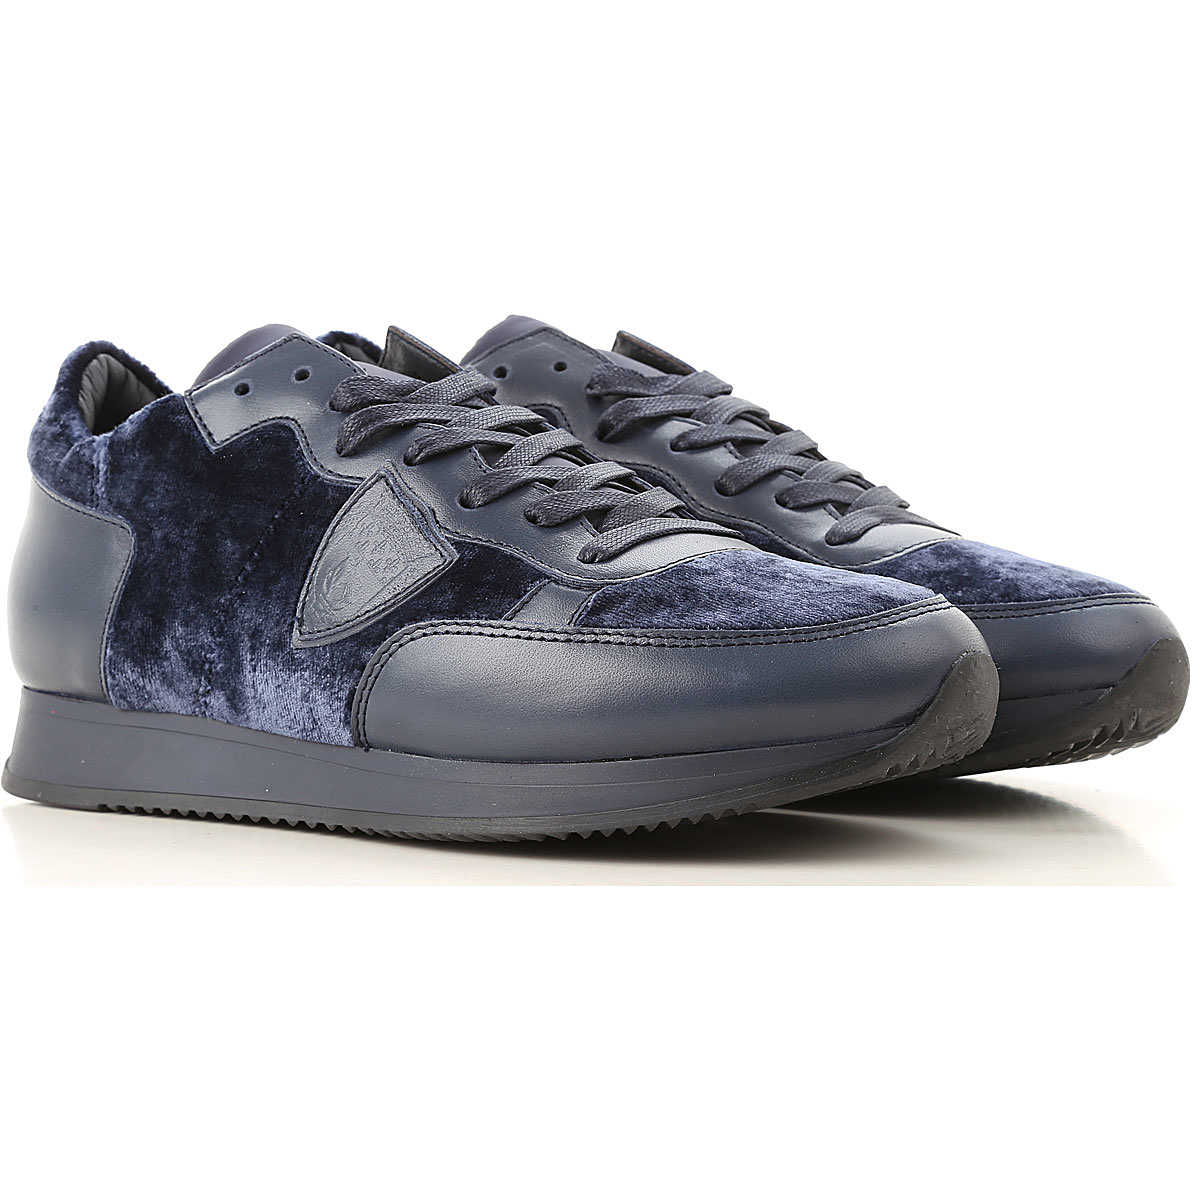 Philippe Model Sneakers for Women On Sale Night Blue - GOOFASH